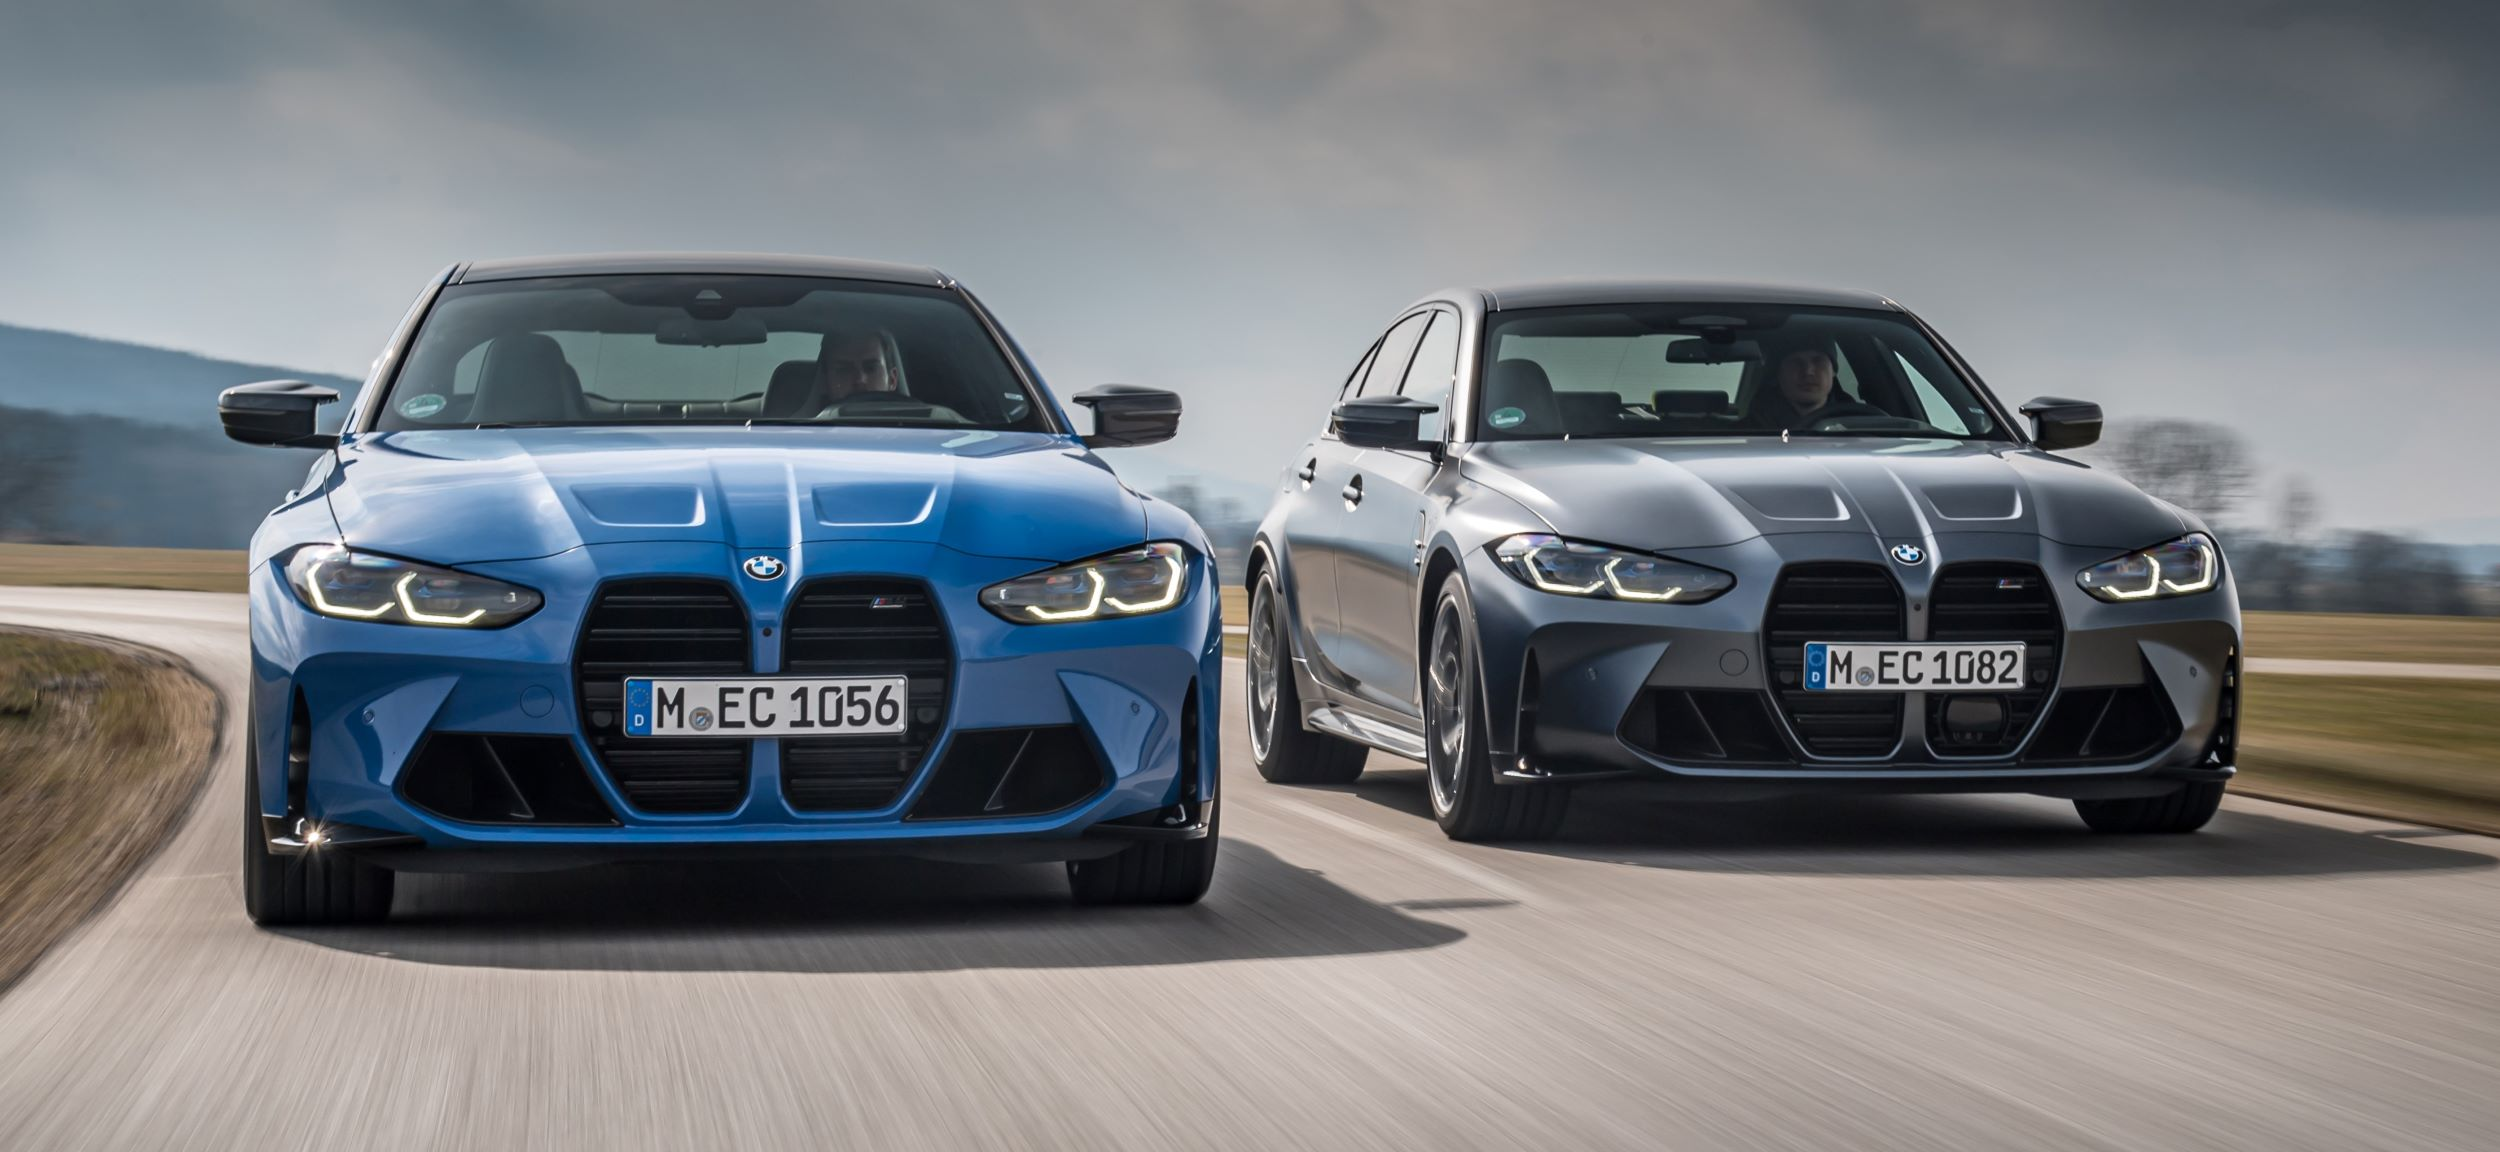 P90416614_highRes_the-all-new-bmw-m3-c